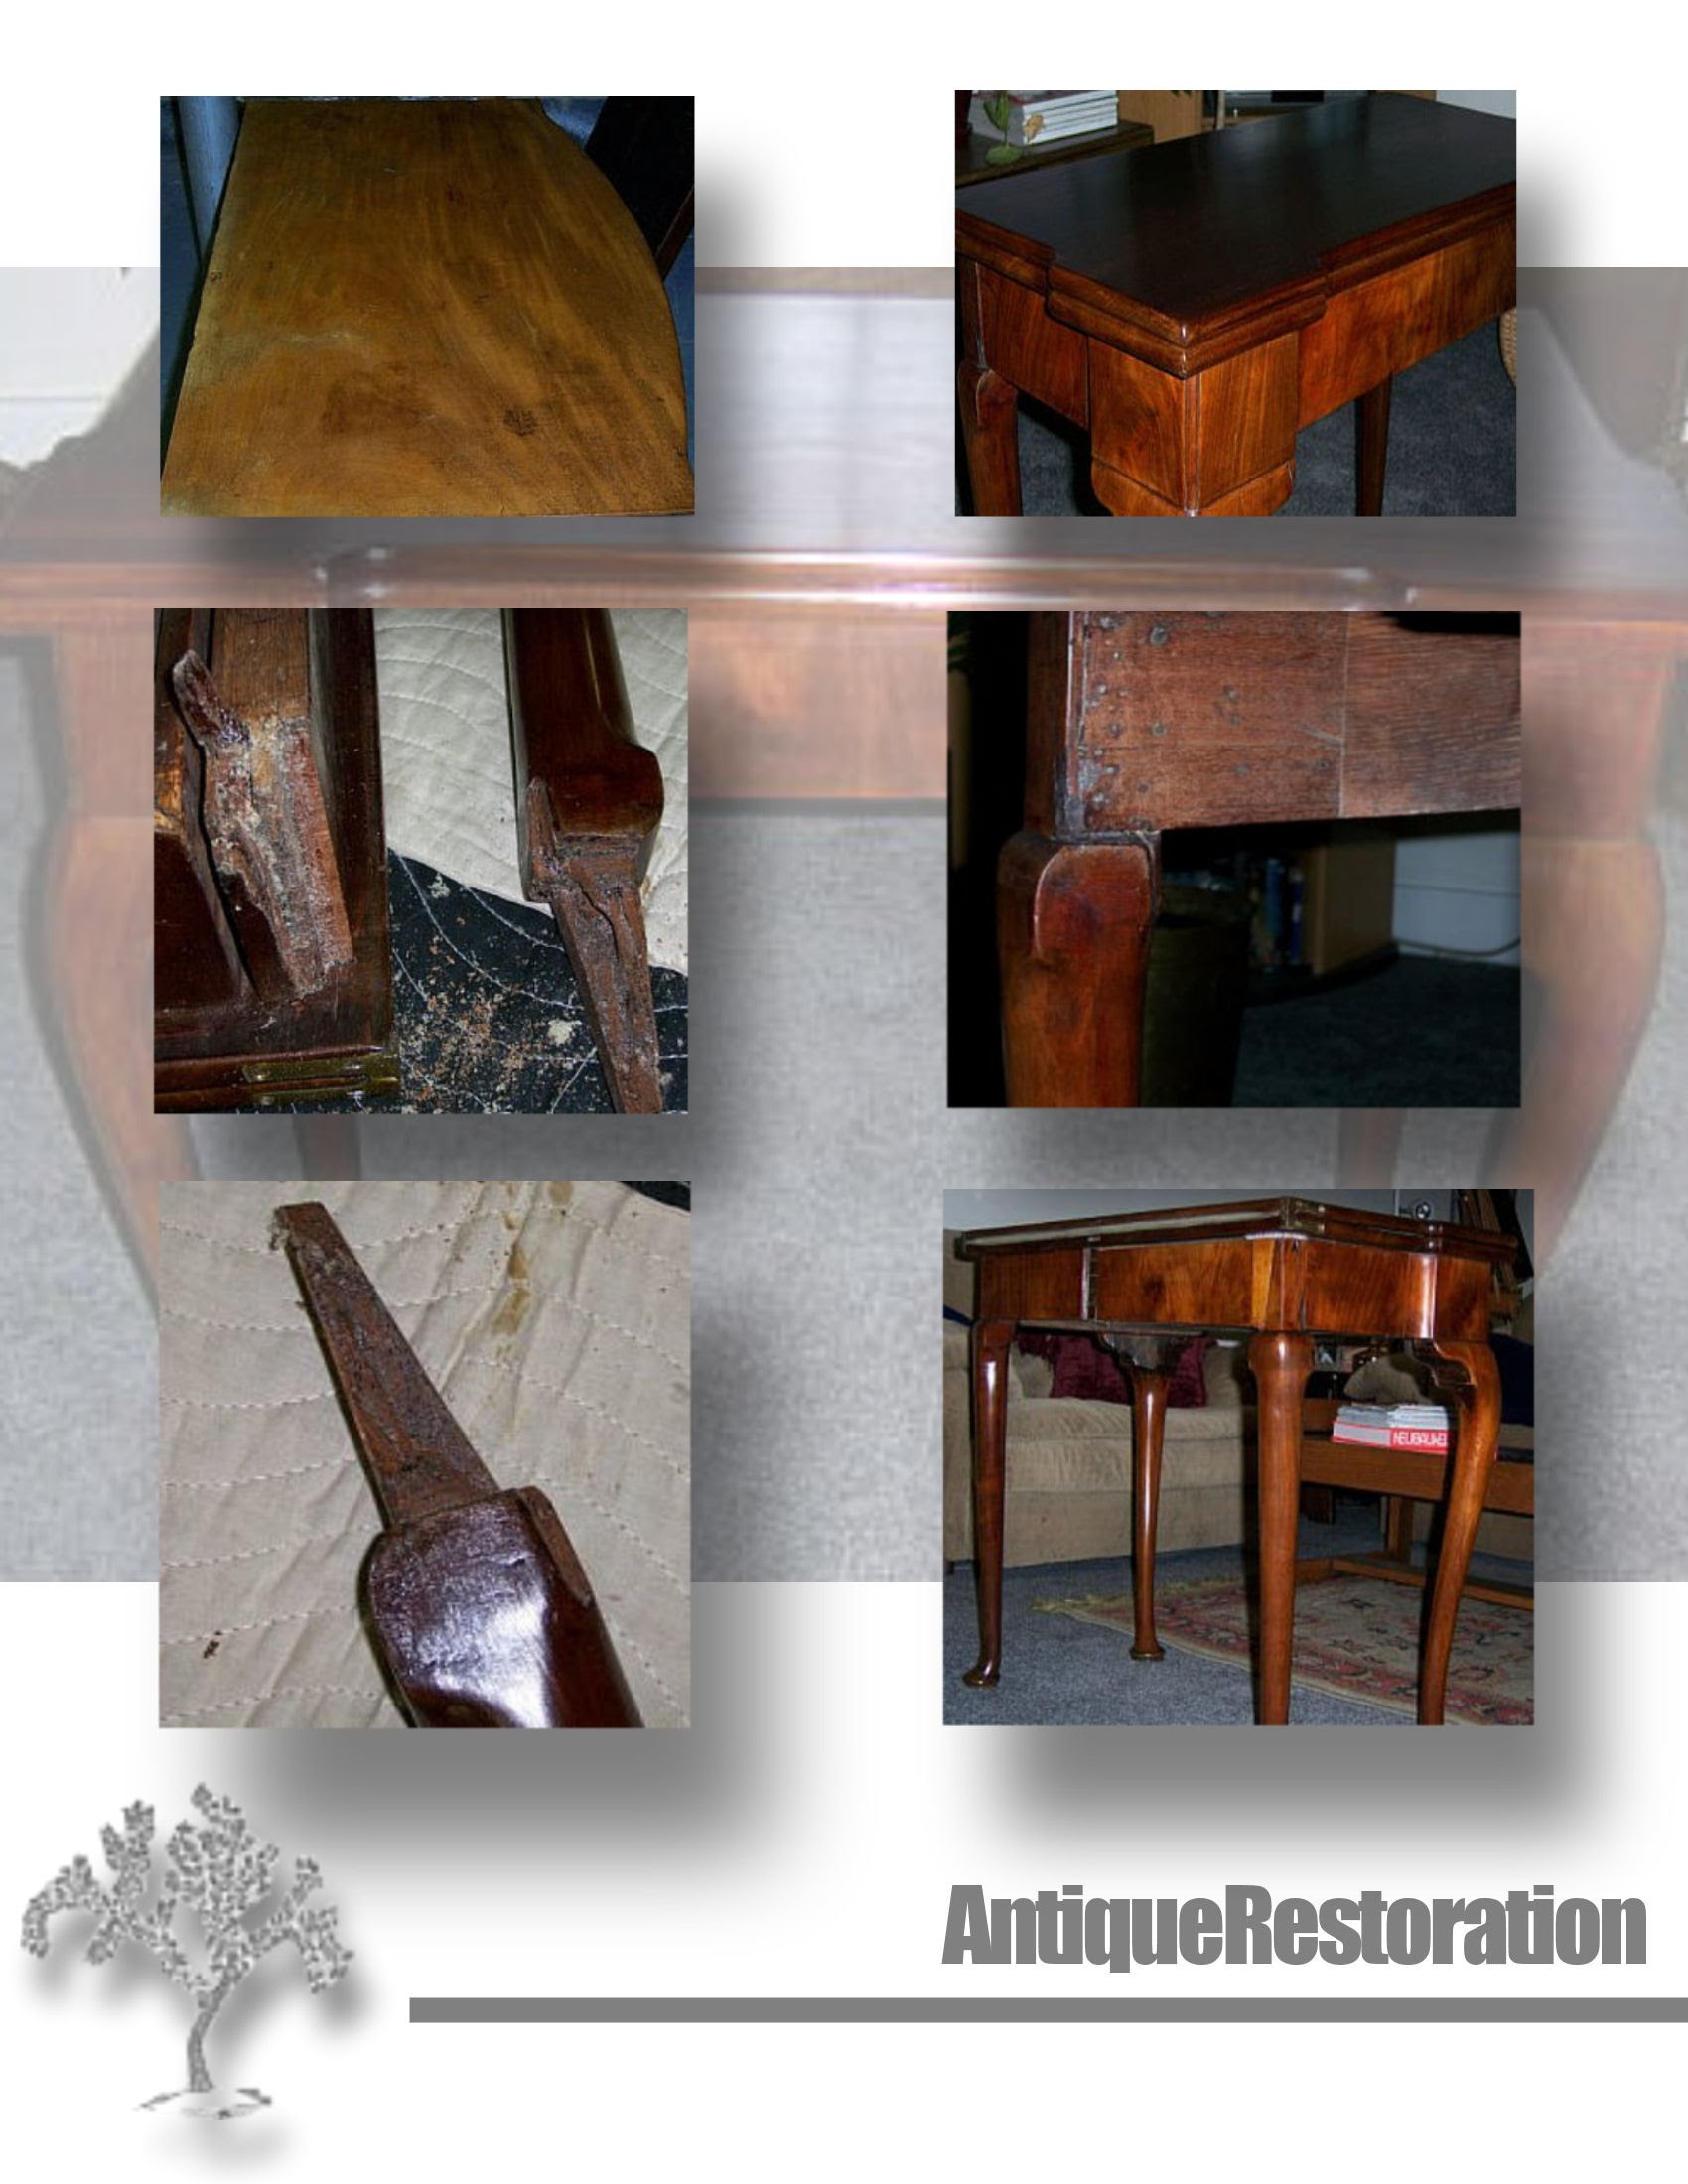 I Inherited The Skill From My Father Steve Stroup Who Has Been Restoring Antique Furniture In Nashville Tennessee For 30 Years